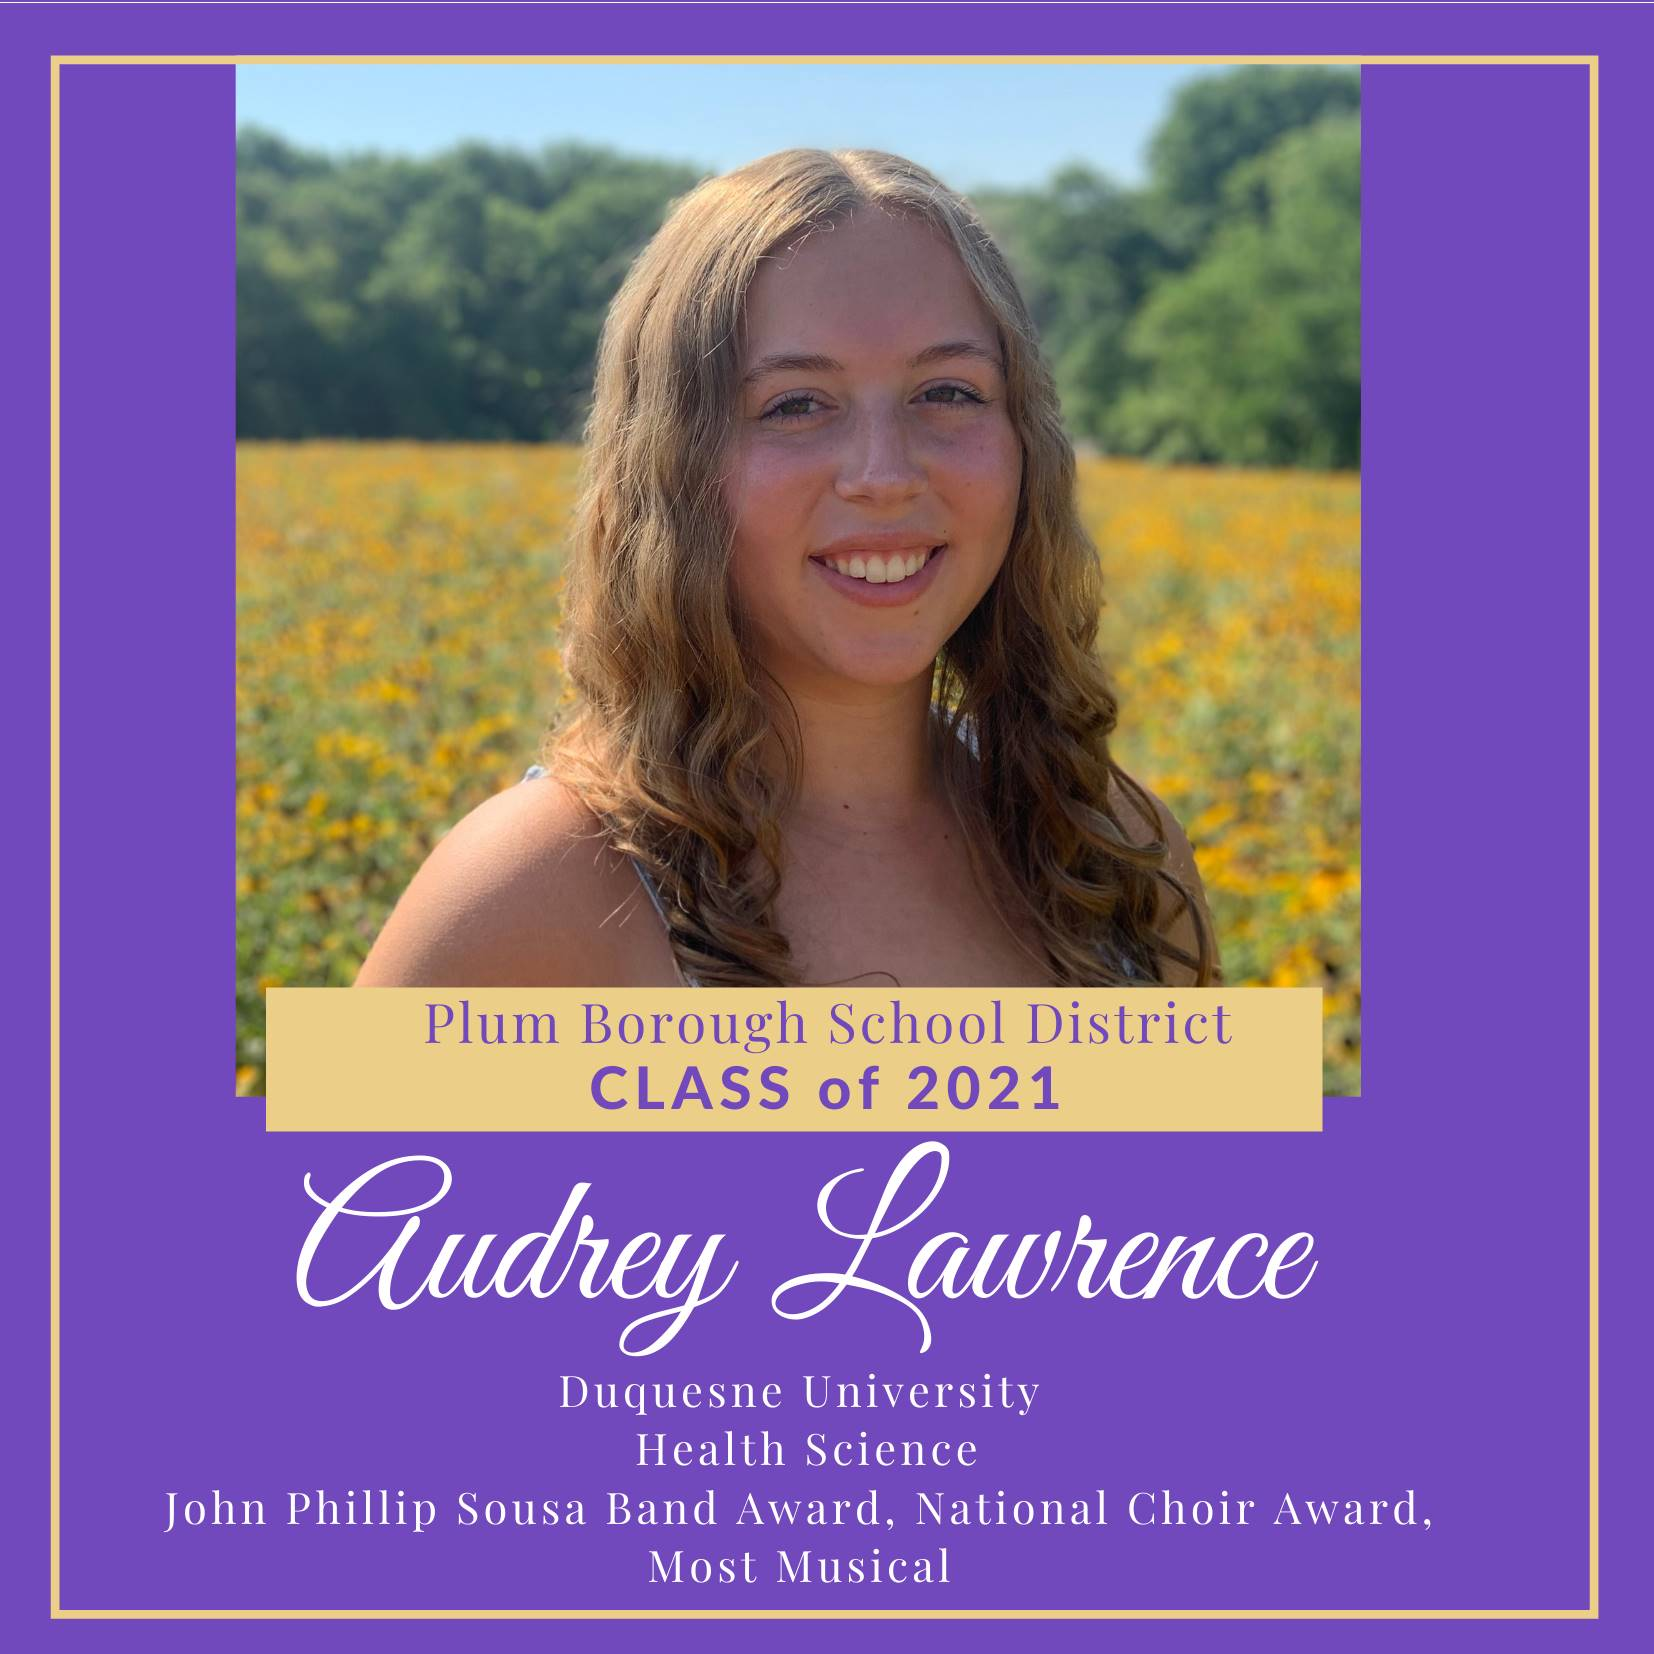 Congratulations to Audrey Lawrence, Class of 2021!